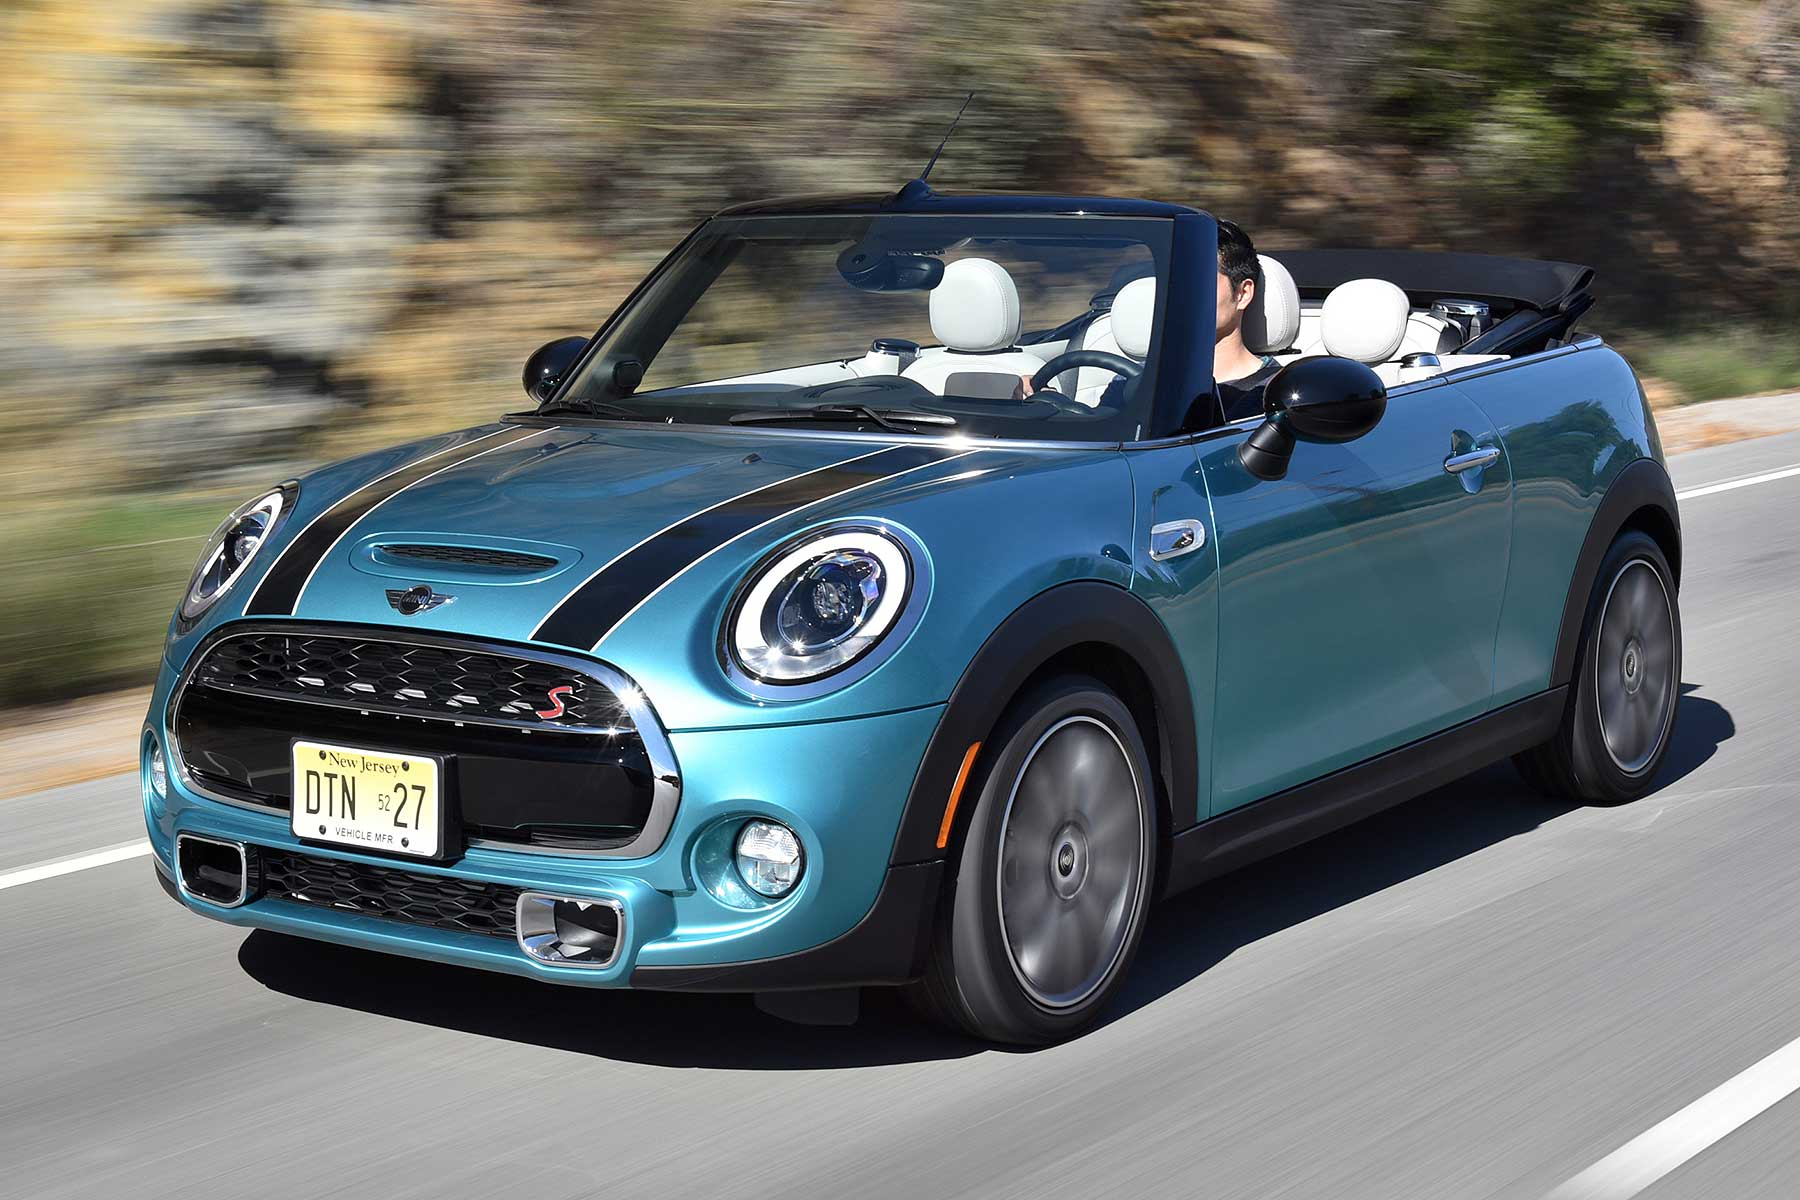 mini cooper s convertible 2016 motoring researchmotoring research. Black Bedroom Furniture Sets. Home Design Ideas